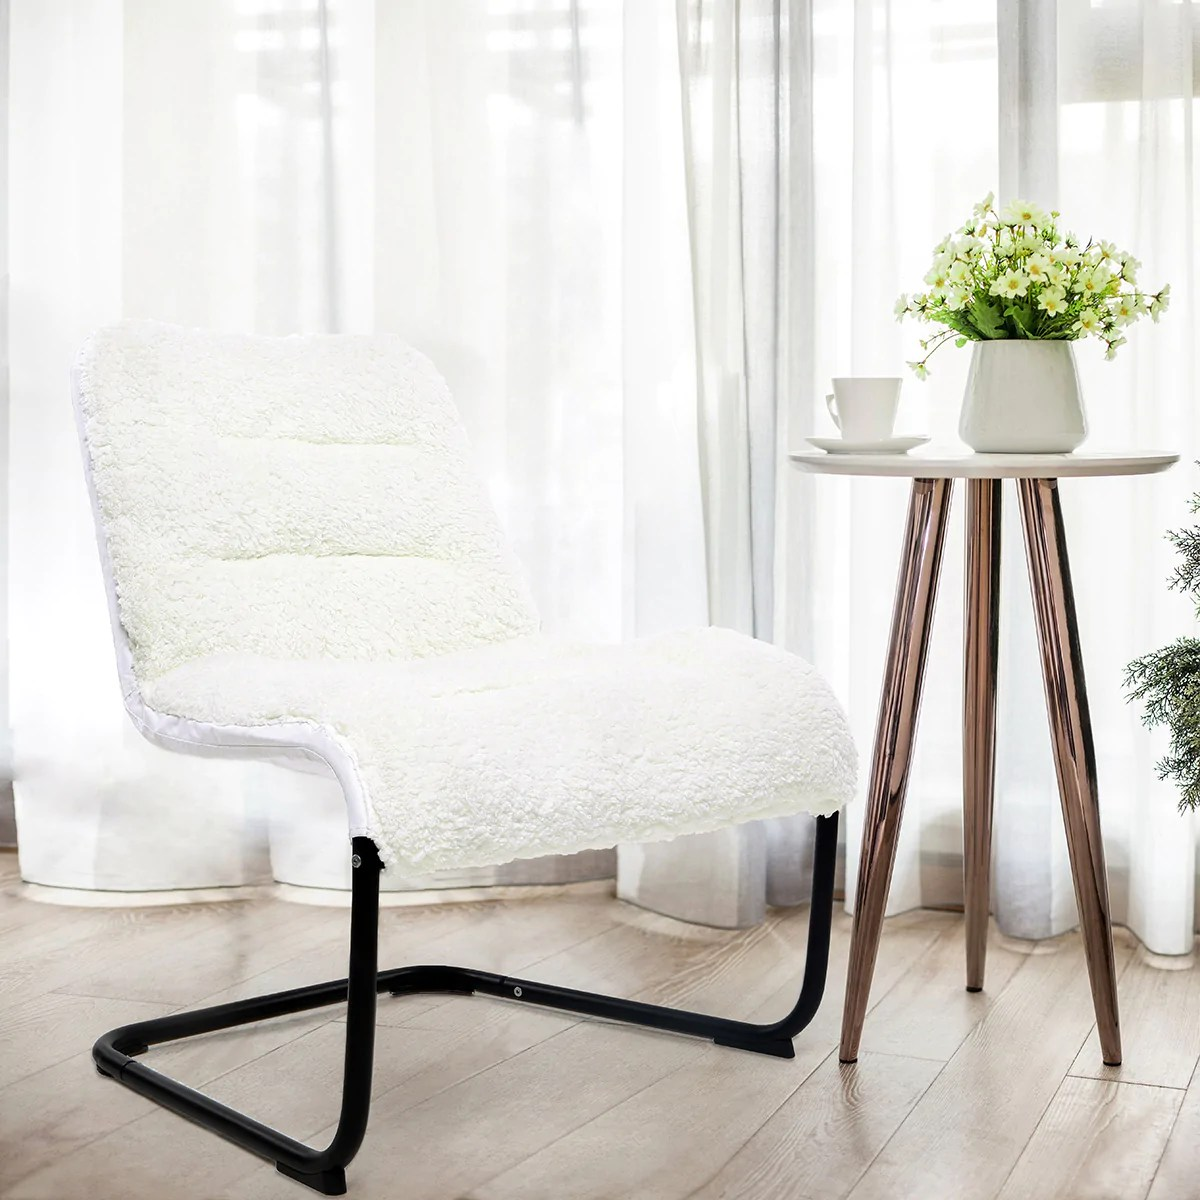 Reading Chairs For Bedroom Zenree Comfortable Padded Reading Chair Bedroom Vanity Lounge White Sherpa